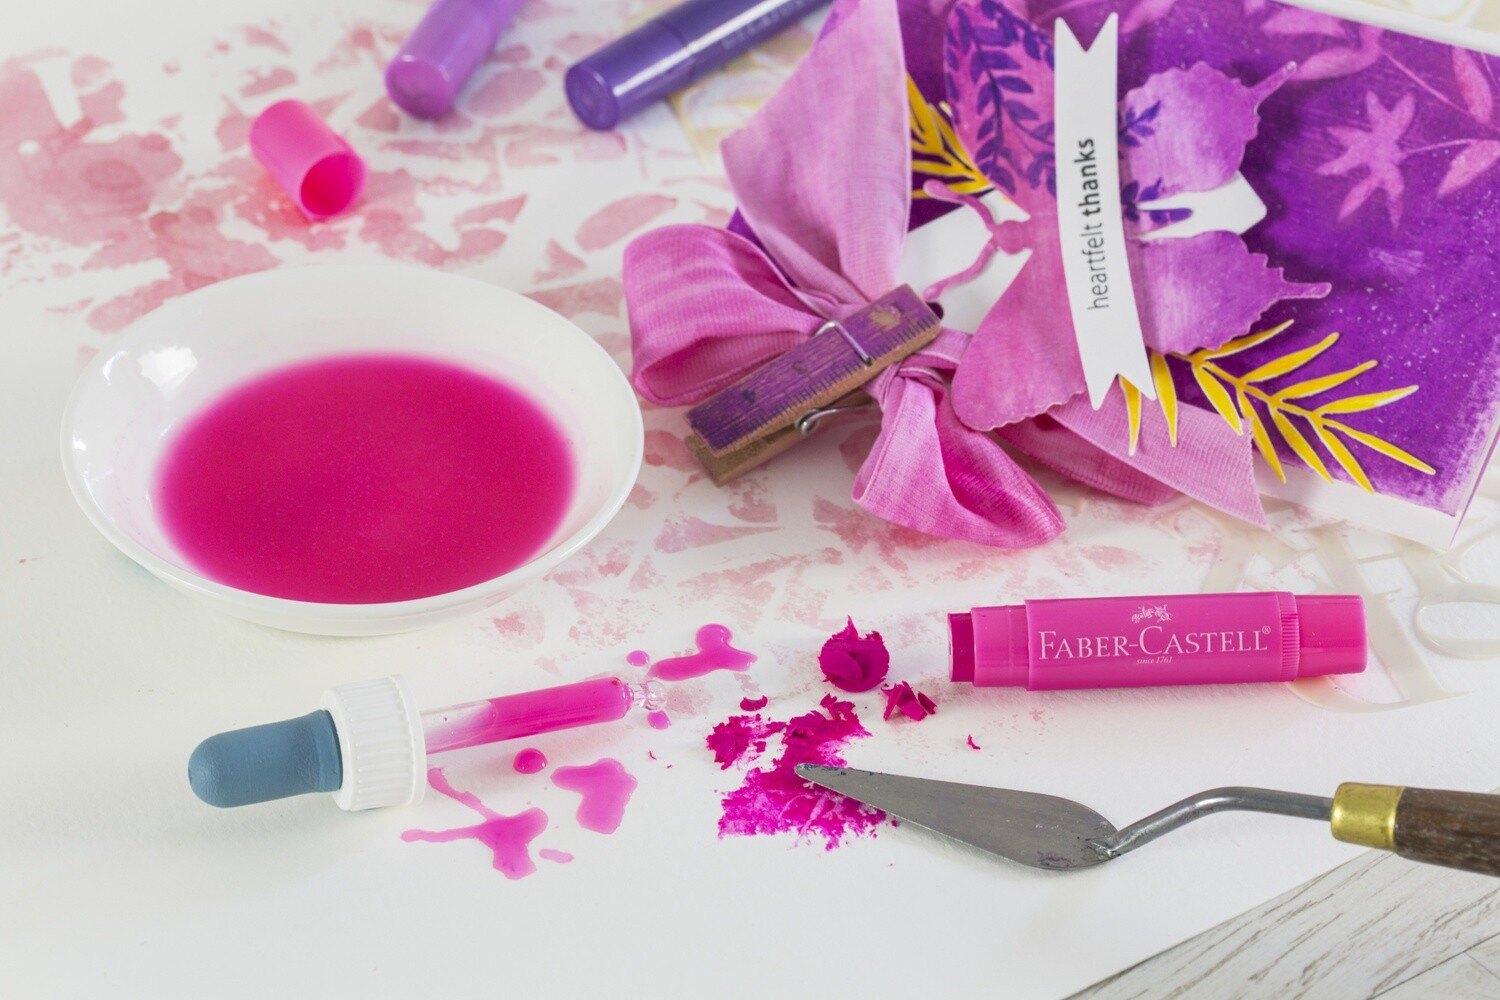 Artful Ways Product Showcase day with Faber Castell and Ivytree Studio 28 March 2020, 9:30-12:30 AM